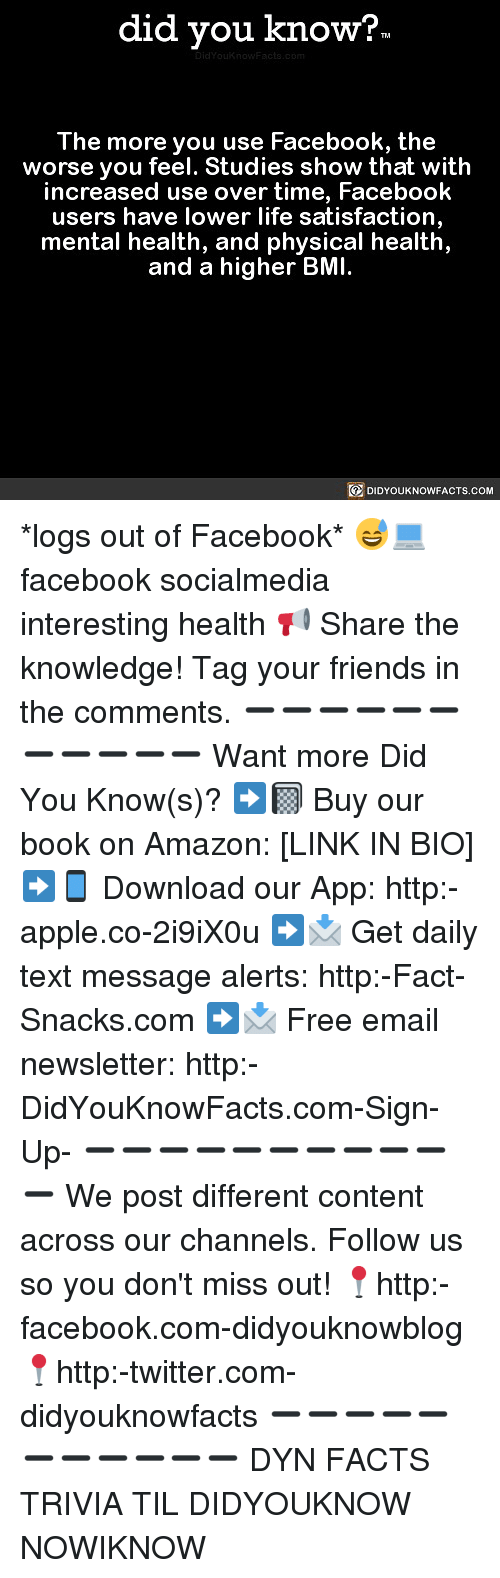 Amazon, Apple, and Facebook: did you know?  The more you use Facebook, the  worse you feel. Studies show that with  increased use over time, Facebook  users have lower life satisfaction  mental health, and physical health,  and a higher BMI.  回DIDYOUKNOWFACTS.COM *logs out of Facebook* 😅💻 facebook socialmedia interesting health 📢 Share the knowledge! Tag your friends in the comments. ➖➖➖➖➖➖➖➖➖➖➖ Want more Did You Know(s)? ➡📓 Buy our book on Amazon: [LINK IN BIO] ➡📱 Download our App: http:-apple.co-2i9iX0u ➡📩 Get daily text message alerts: http:-Fact-Snacks.com ➡📩 Free email newsletter: http:-DidYouKnowFacts.com-Sign-Up- ➖➖➖➖➖➖➖➖➖➖➖ We post different content across our channels. Follow us so you don't miss out! 📍http:-facebook.com-didyouknowblog 📍http:-twitter.com-didyouknowfacts ➖➖➖➖➖➖➖➖➖➖➖ DYN FACTS TRIVIA TIL DIDYOUKNOW NOWIKNOW